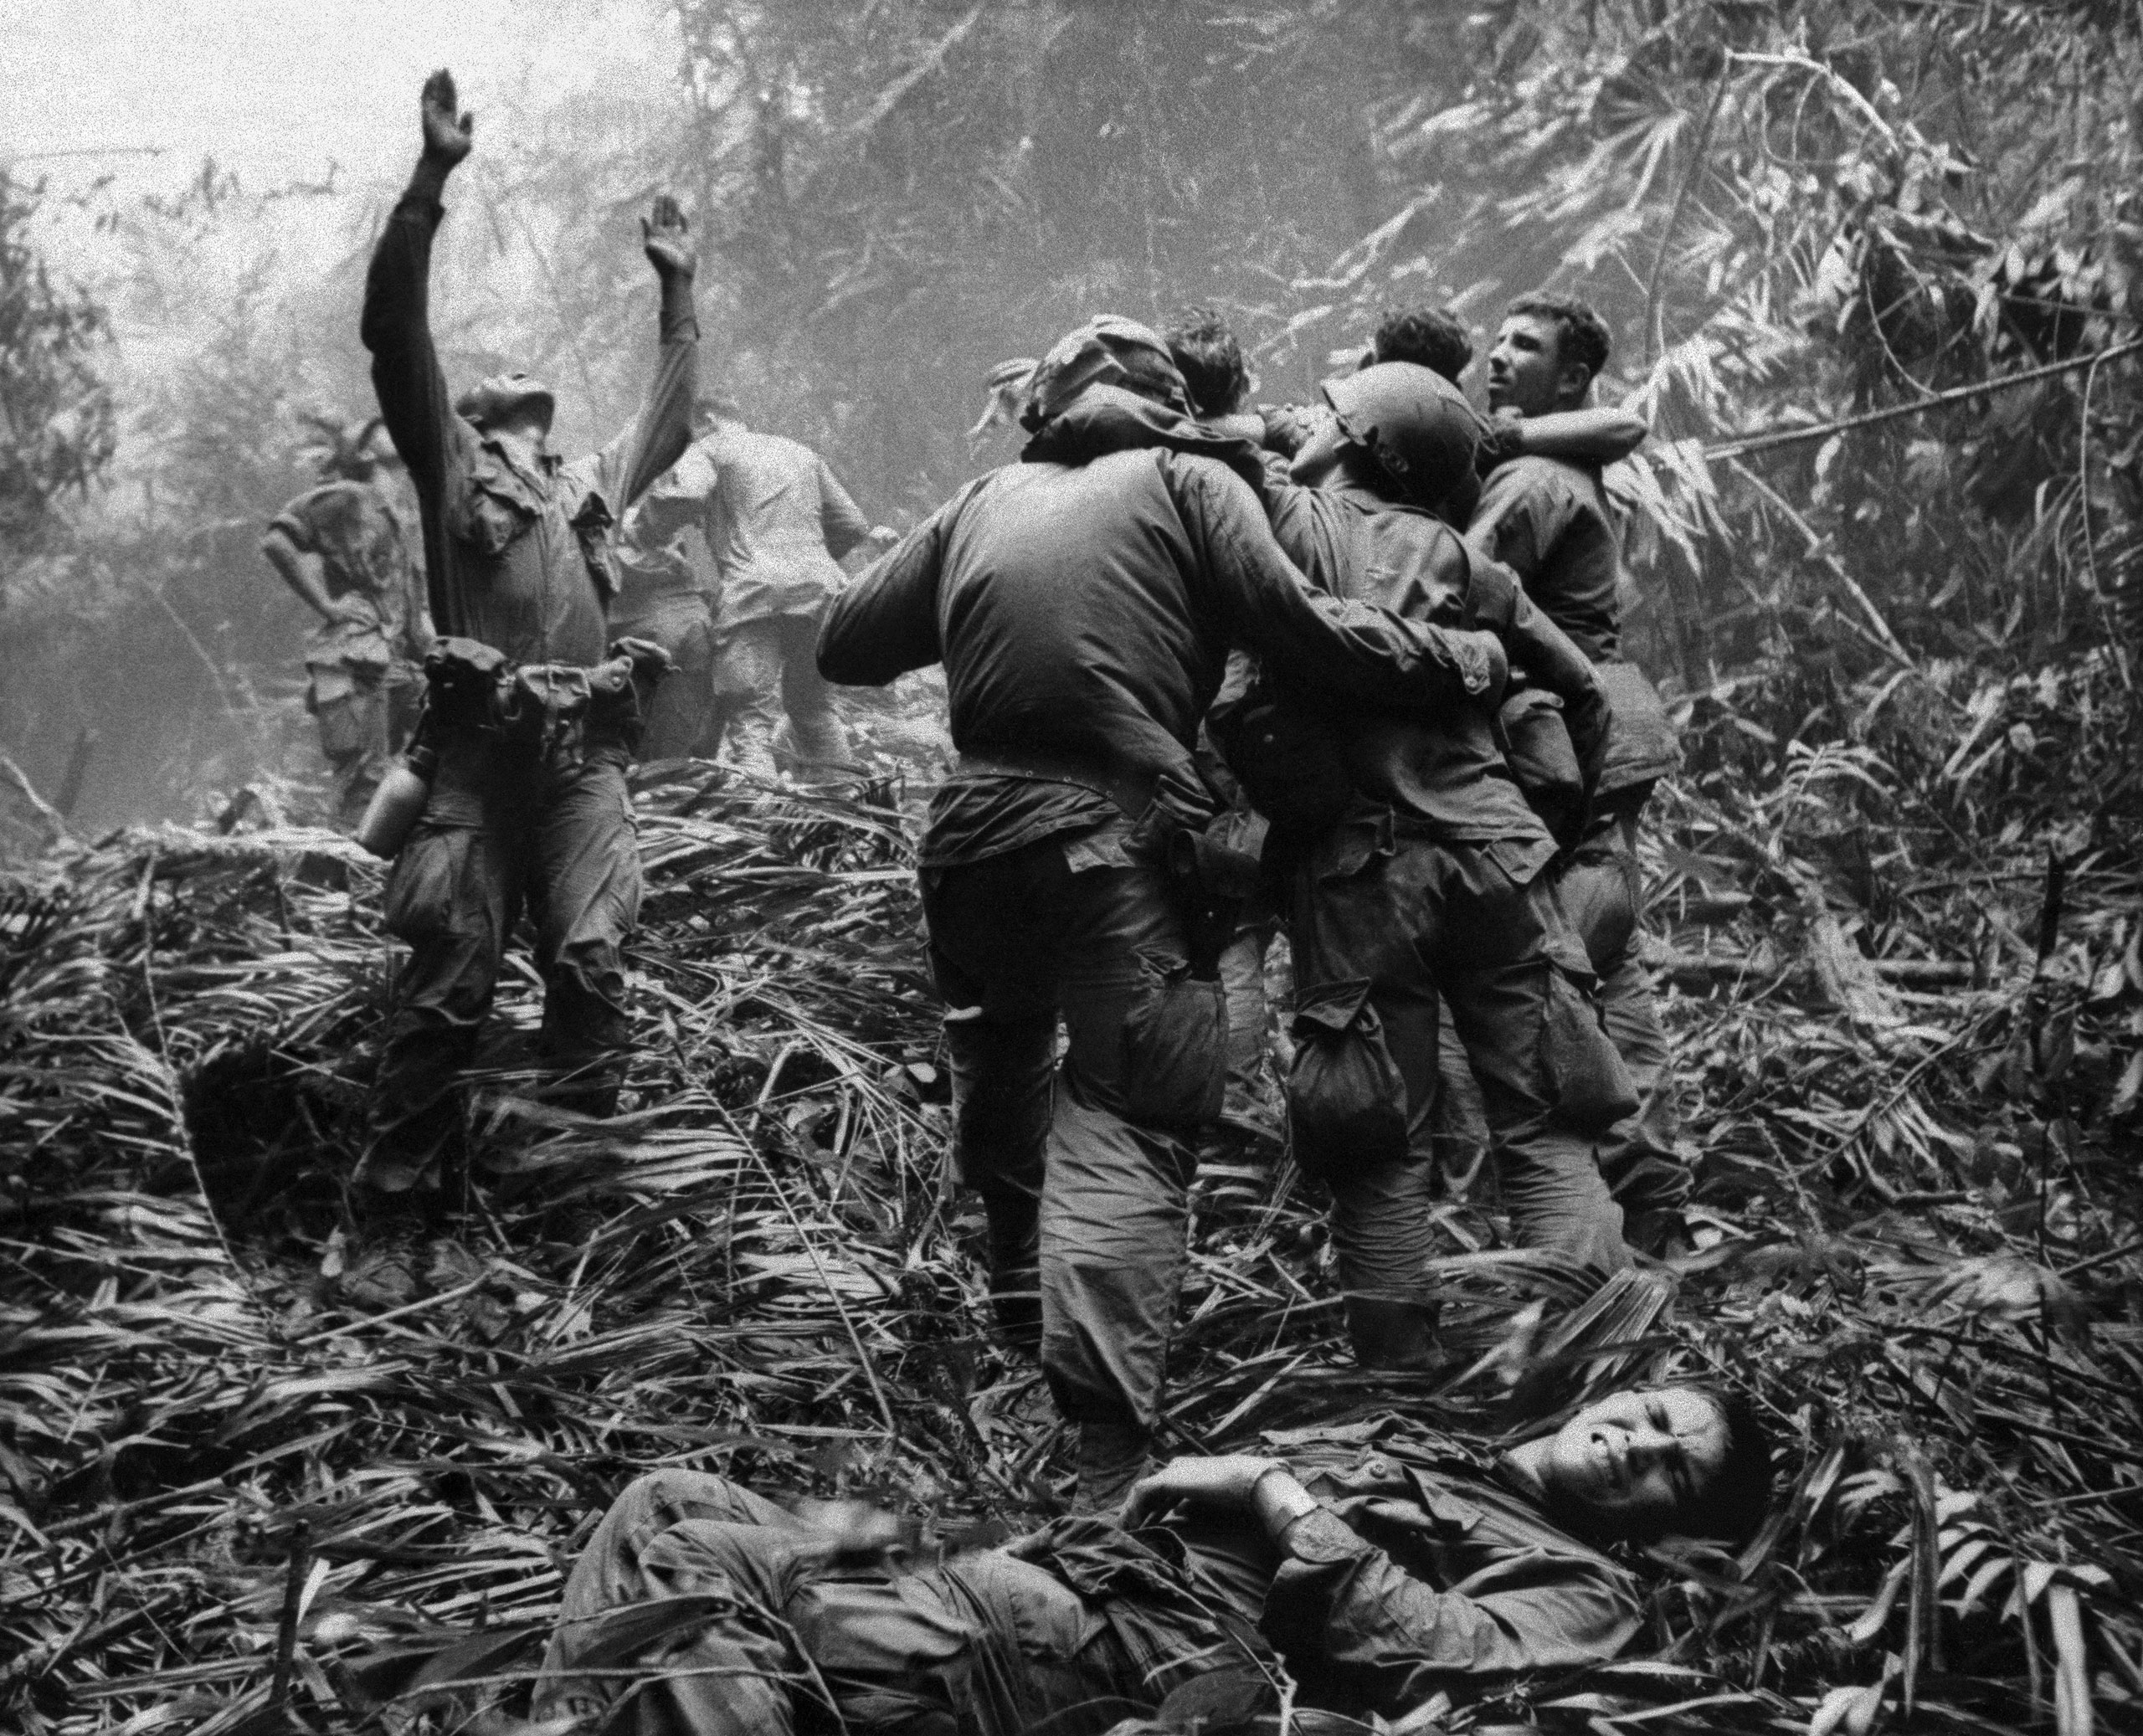 As fellow troopers aid wounded comrades, the first sergeant of A Company, 101st Airborne Division, guides a medevac helicopter through the jungle foliage to pick up casualties suffered during a five-day patrol near Hue in Vietnam in April 1968.